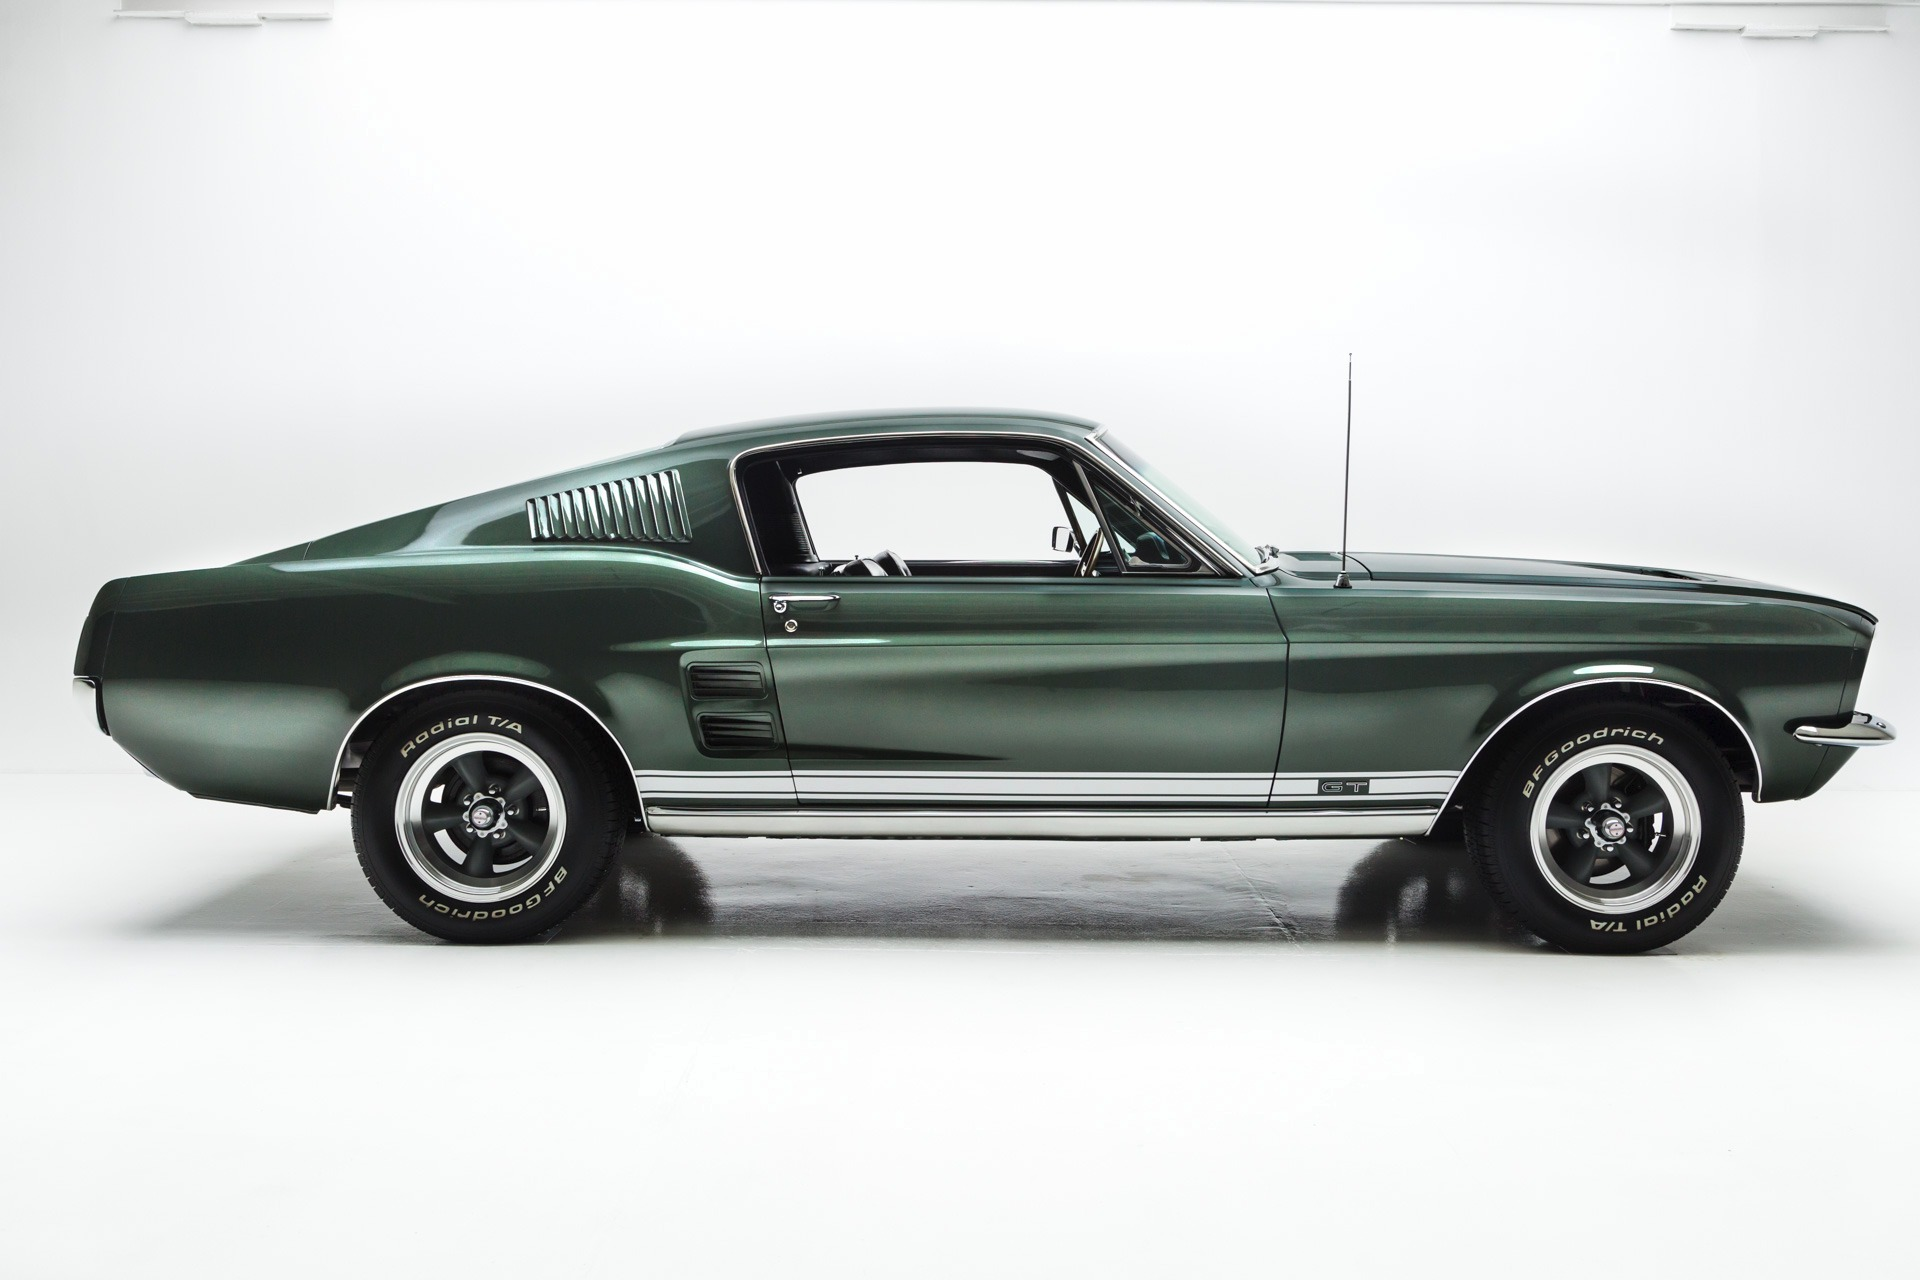 Watch video watch video for sale used 1967 ford mustang gt hipo 289 4 speed american dream machines